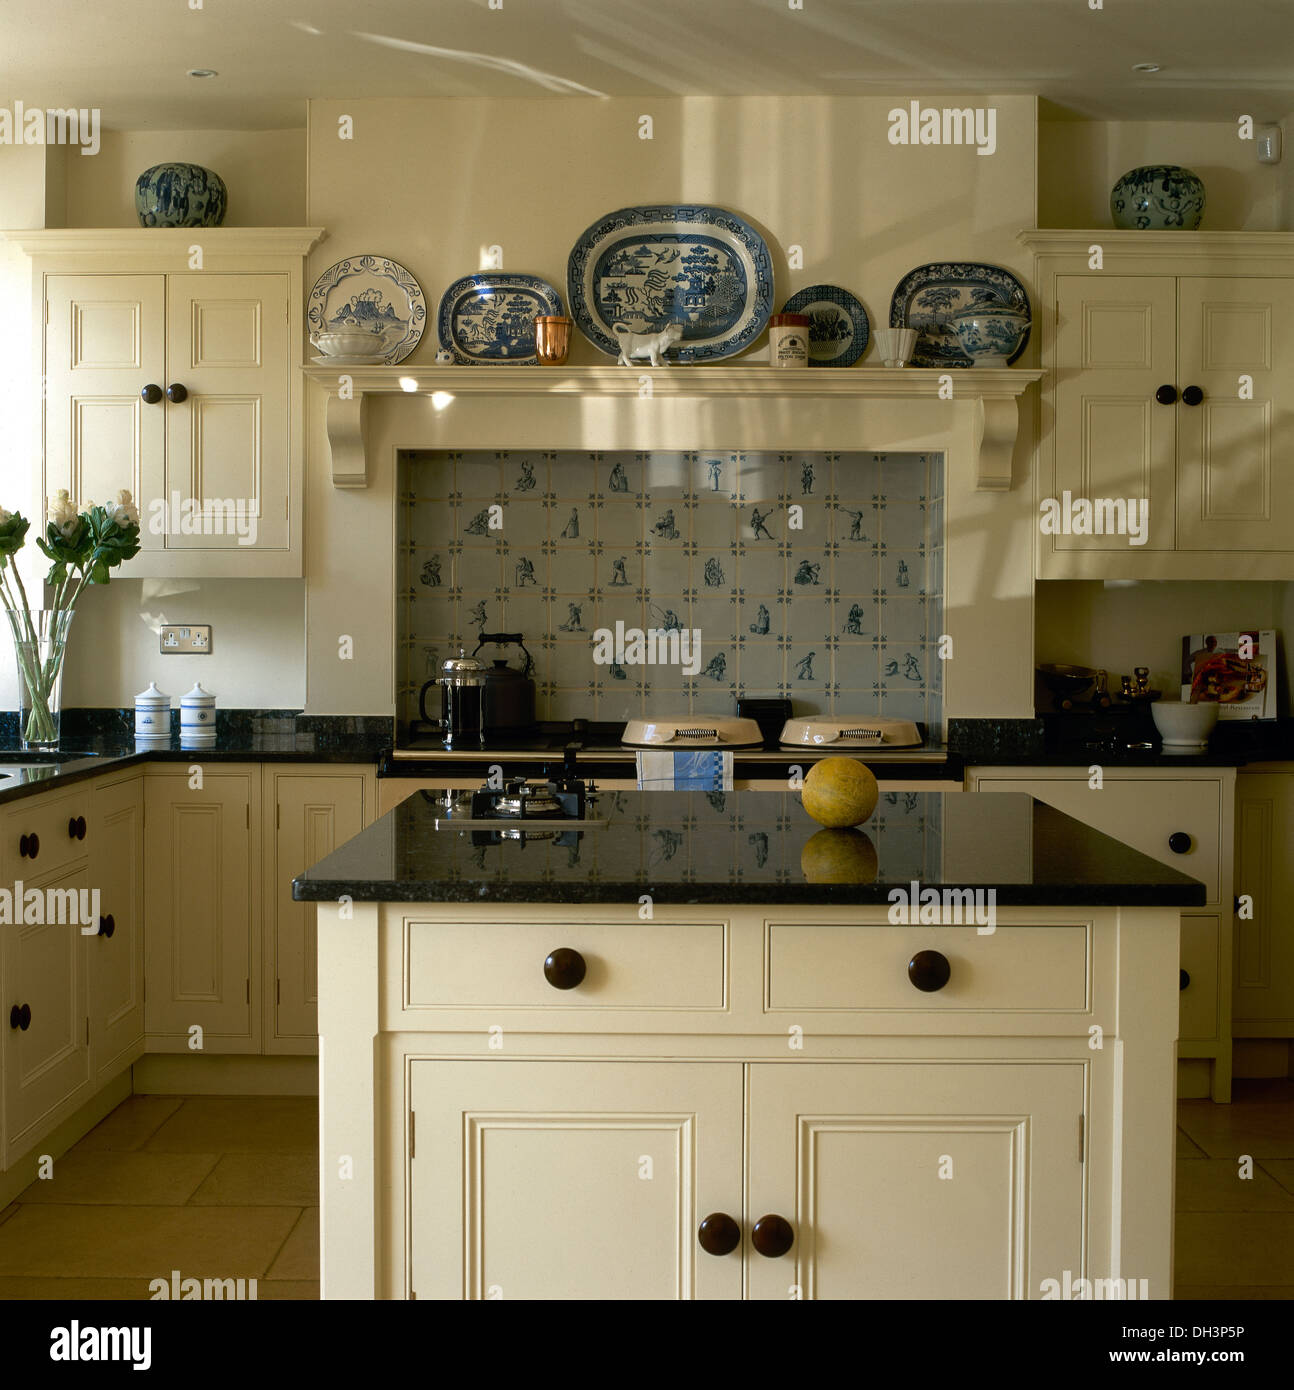 Oven In Island Unit Granite Worktop On Island Unit In Country Kitchen With